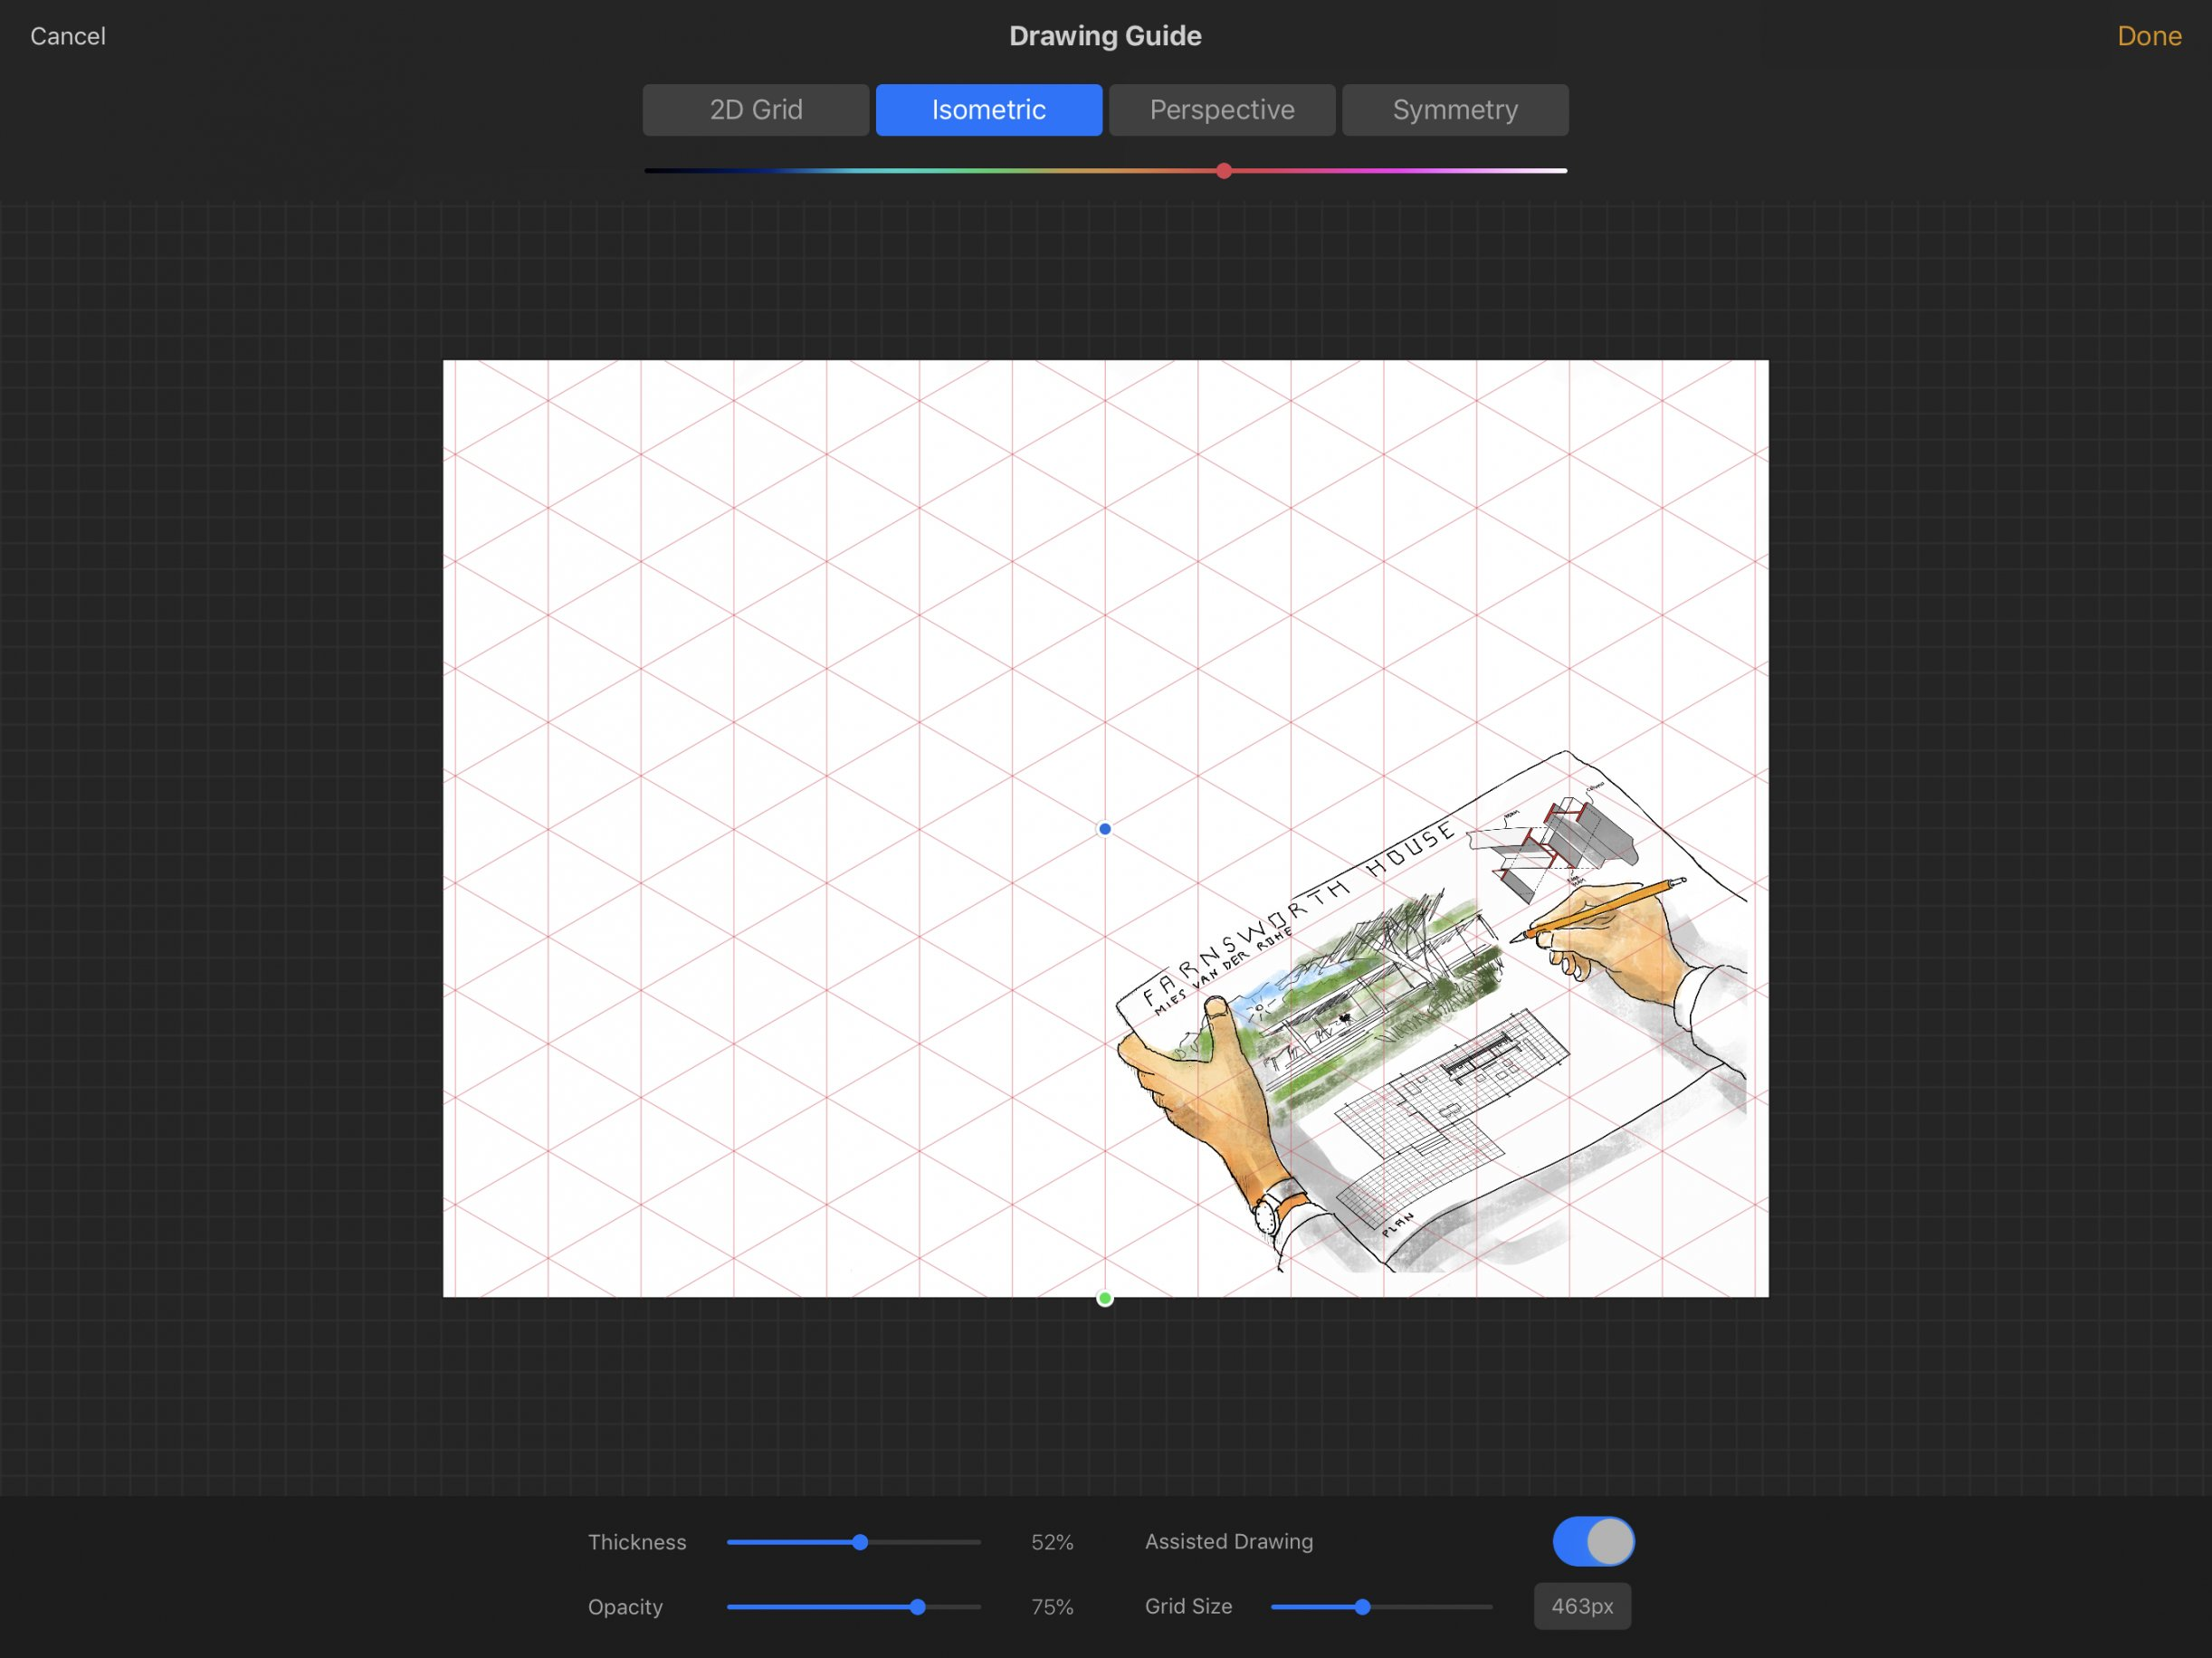 How to use 2D Grid, Isometric, and Perspective Drawing Guides